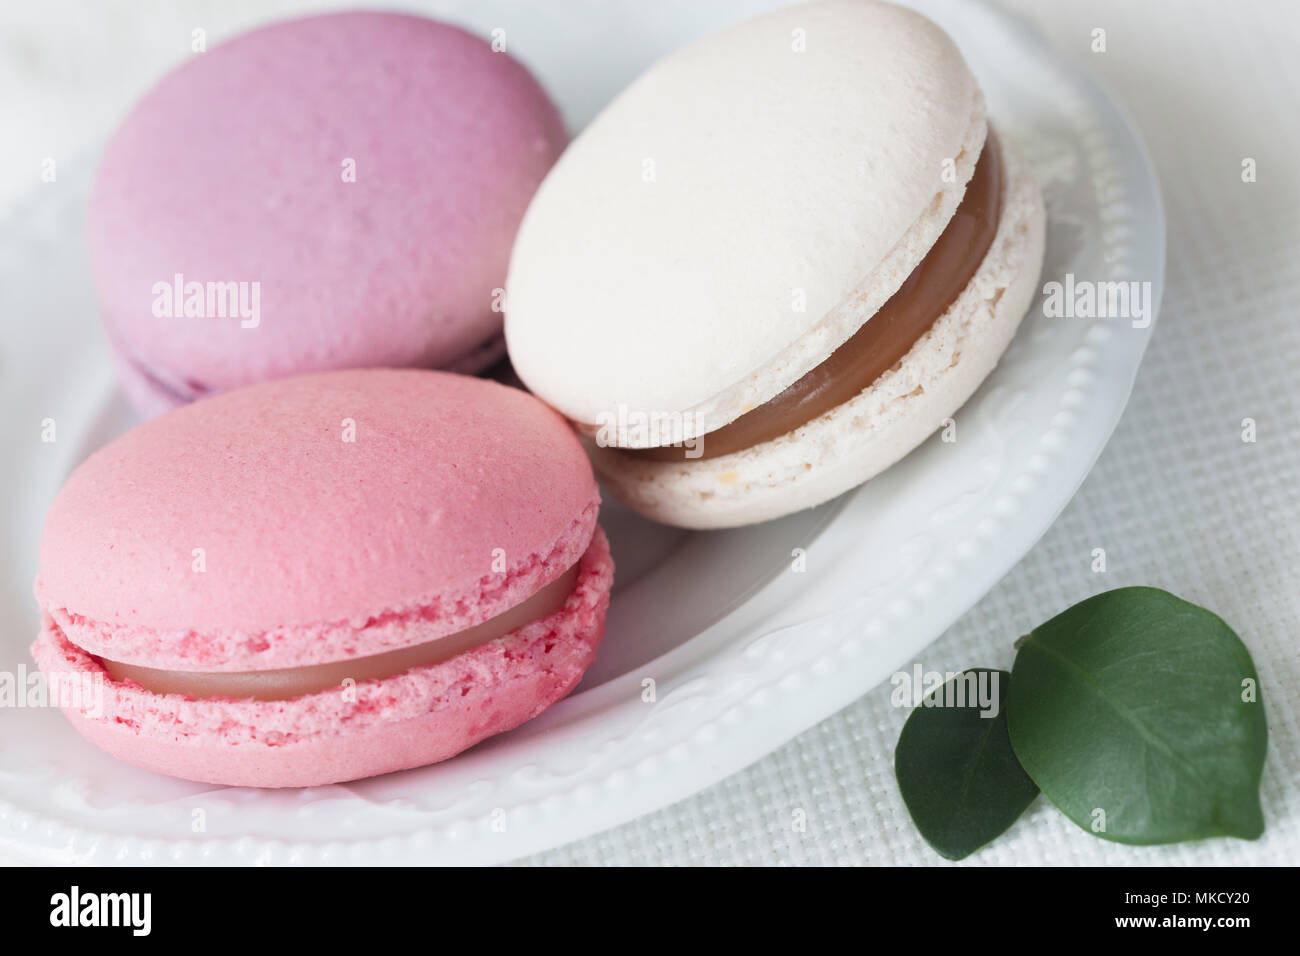 Pink, white and violet Macaroons close-up in white plate, spring green petals, tender pastel background. Soft focus. Romantic morning, gift for beloved - Stock Image